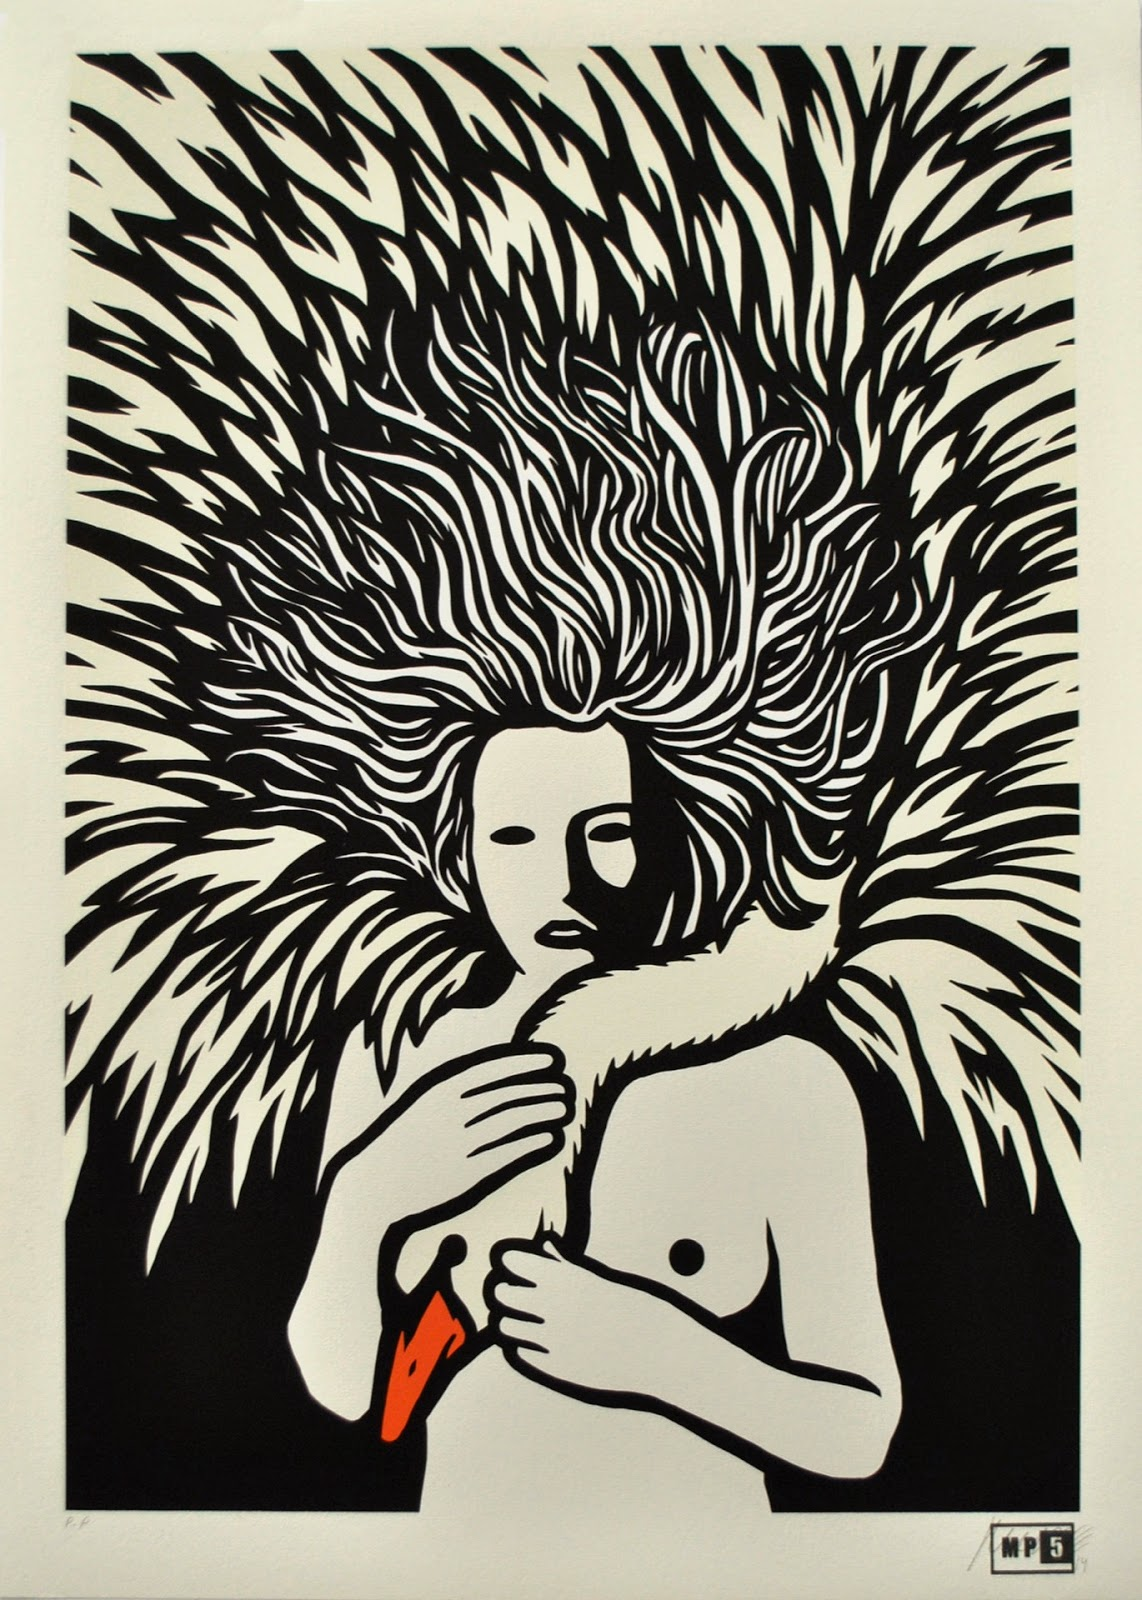 """The Great Mother"" is an edition of 35, 4 layer hand-pulled screen-print on hannhemule 300gsm paper, it measures 50 x 70 cm and comes signed and numbered by the Italian artist."